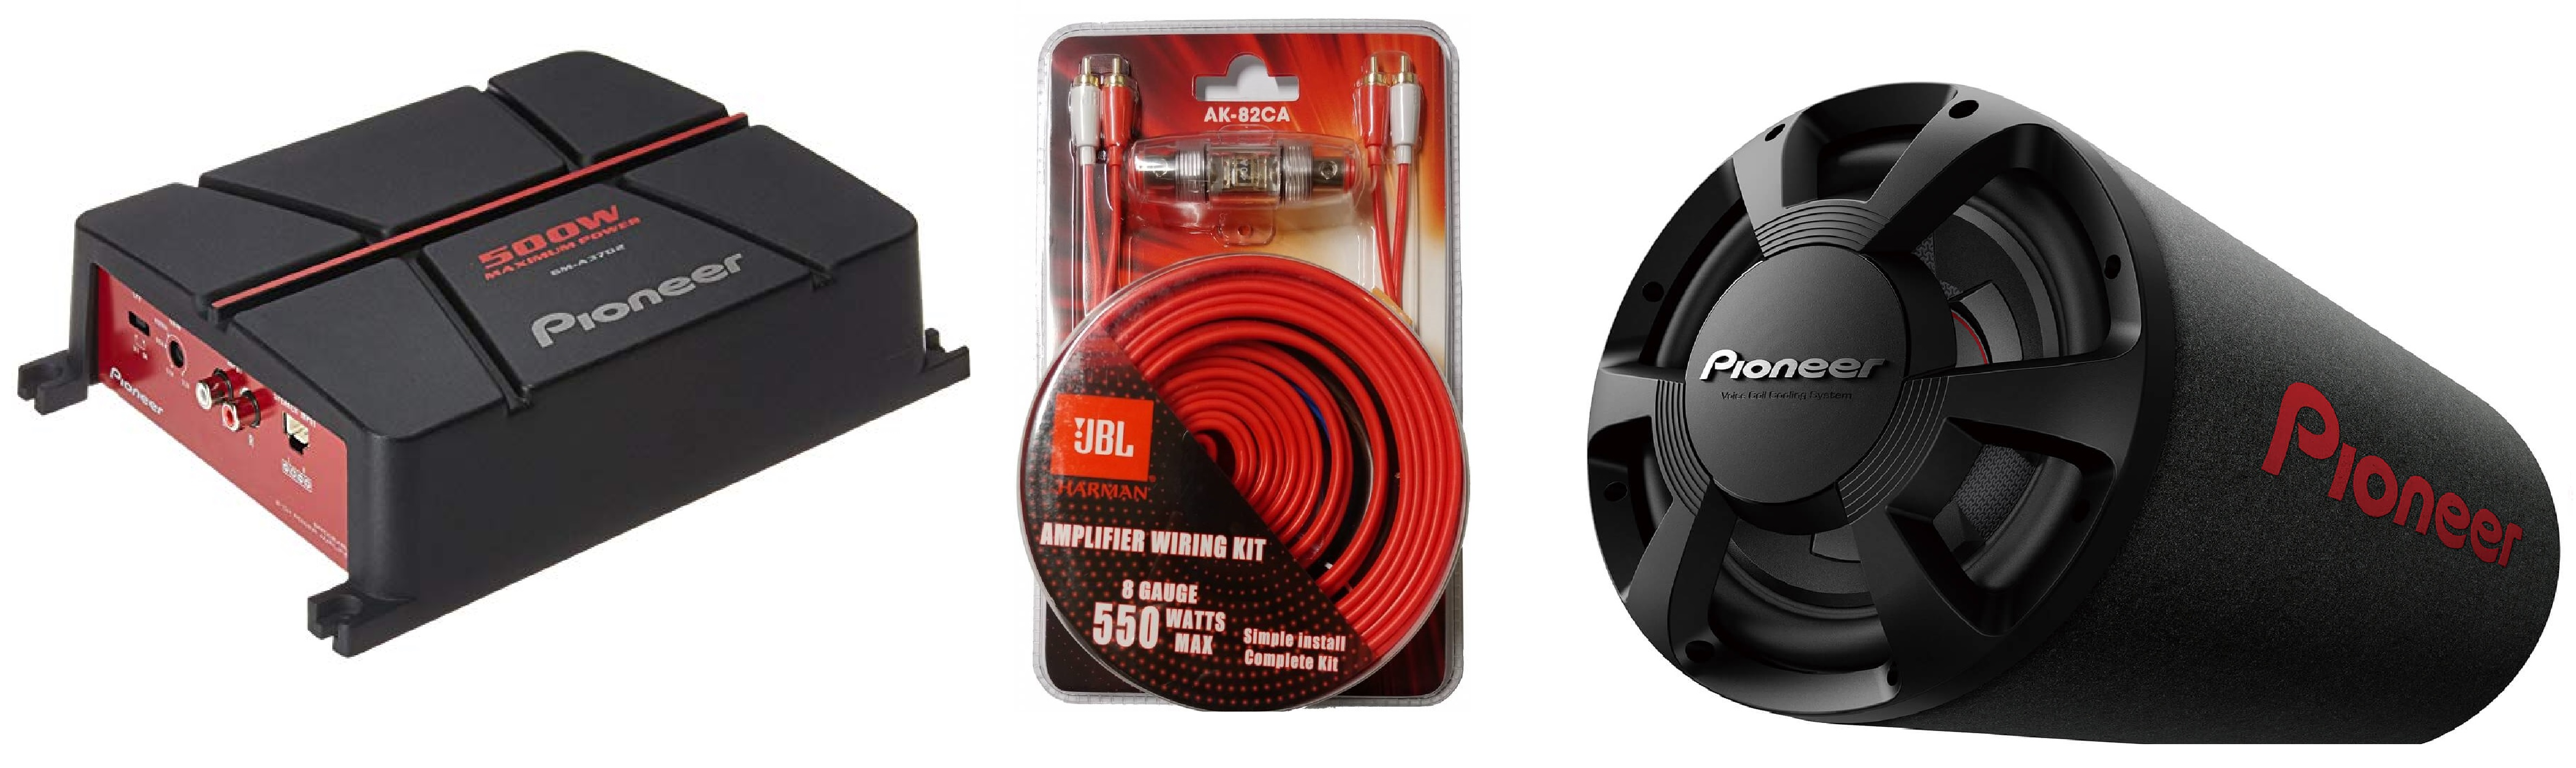 Awesome Pioneer Ts Wx306T Tube Gm A3702 Amp Wiring Kit Package Wiring Cloud Pimpapsuggs Outletorg